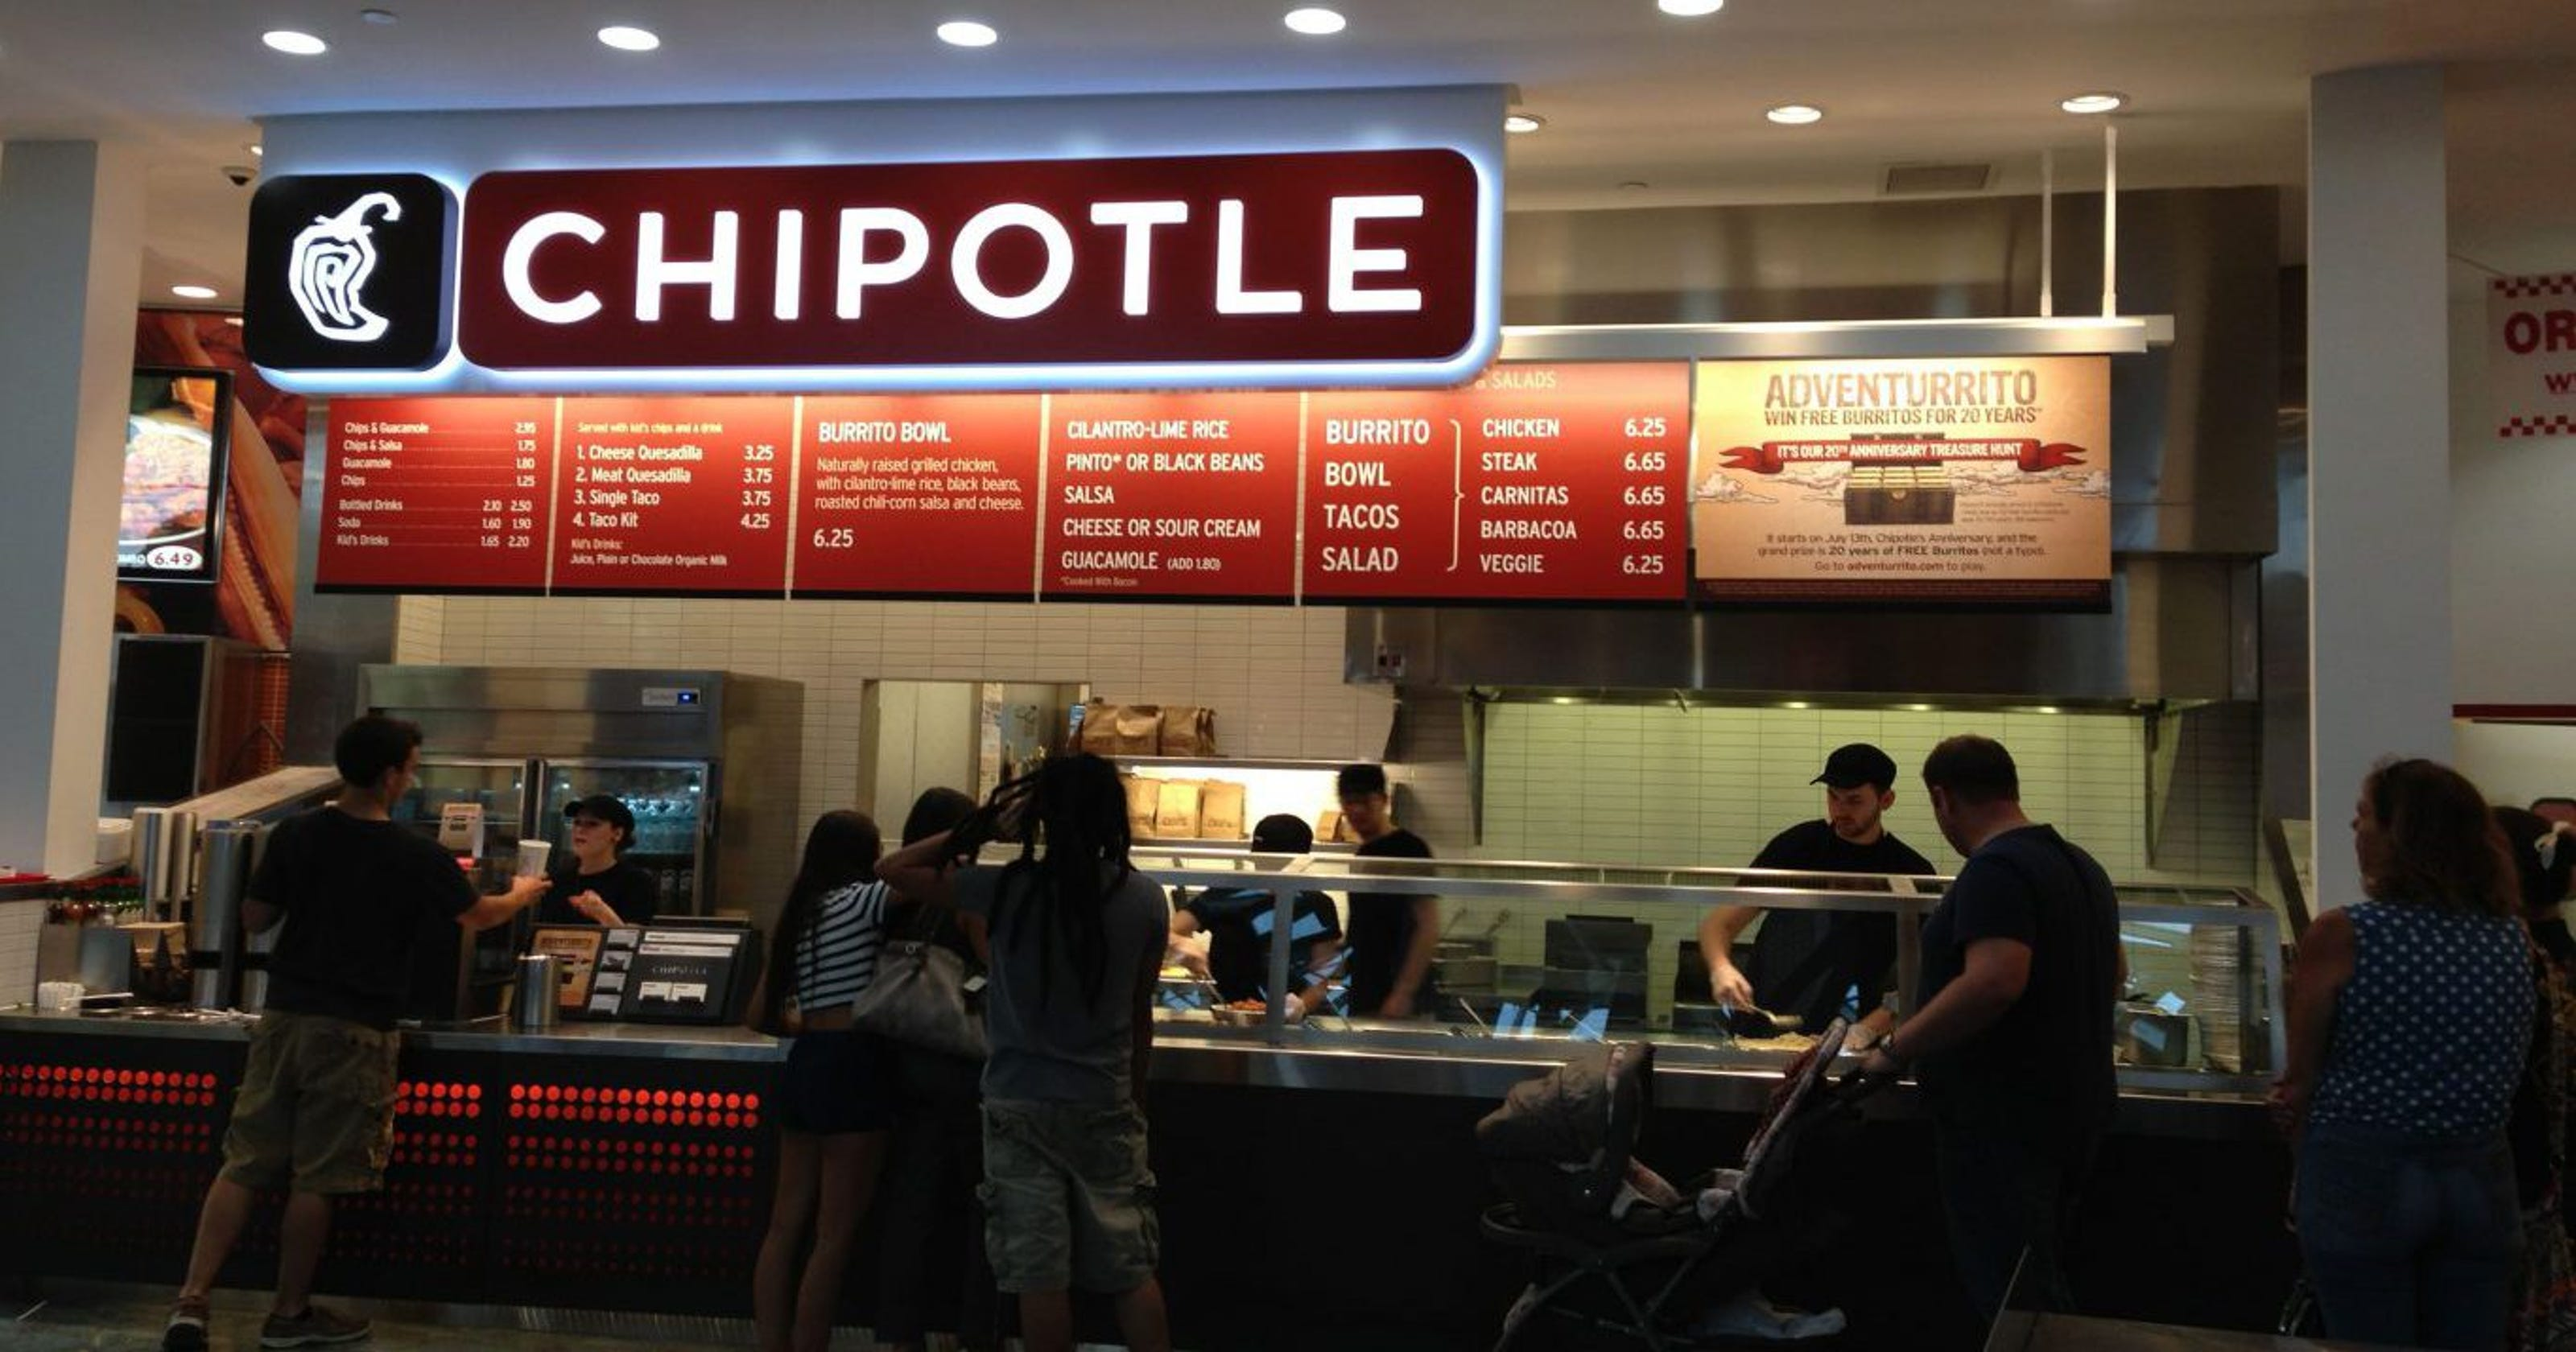 Chipotle To Retrain All Workers On Food Safety After Ohio Episode